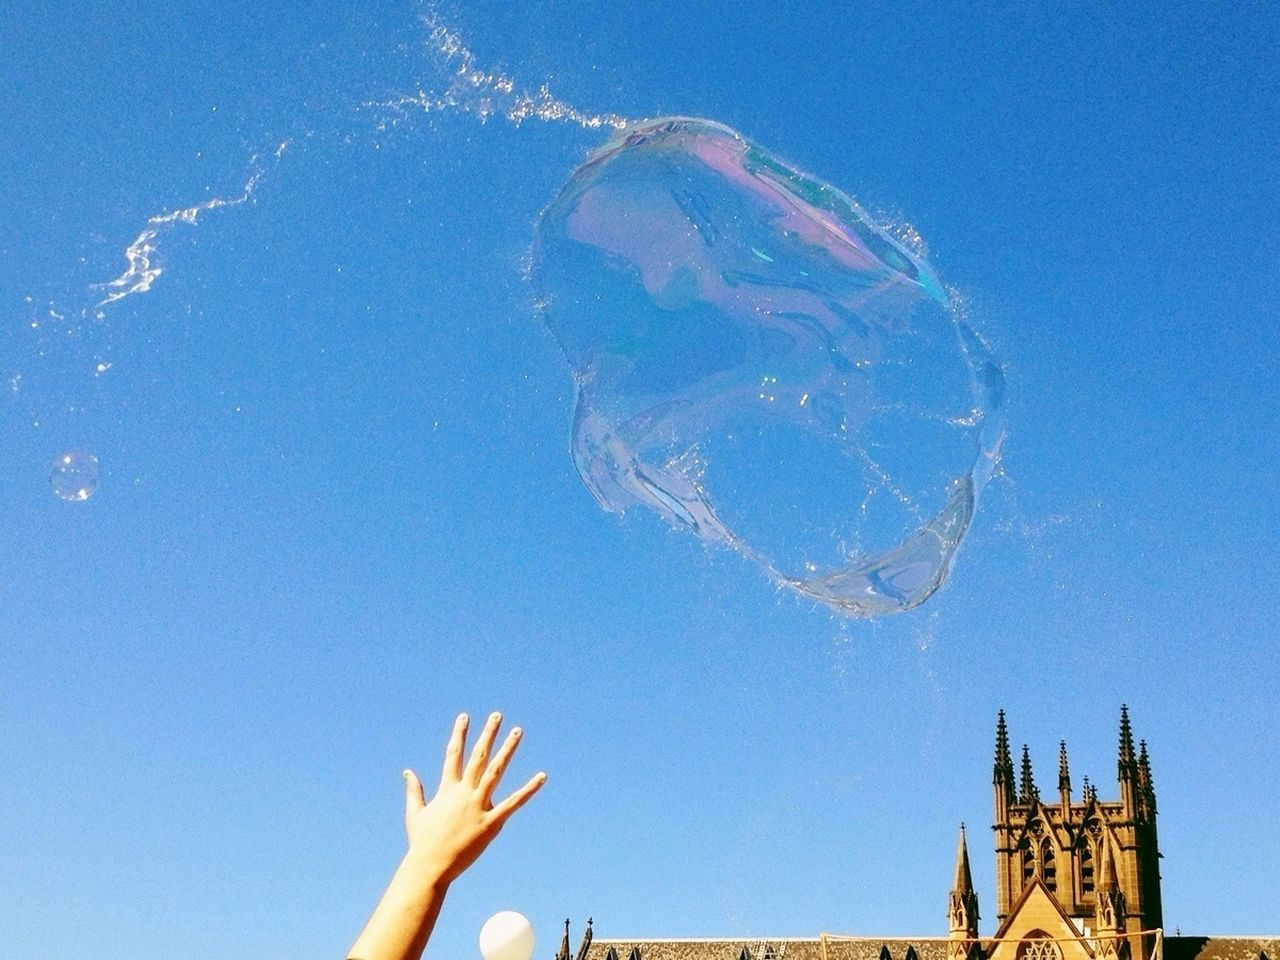 Bubble against clear sky